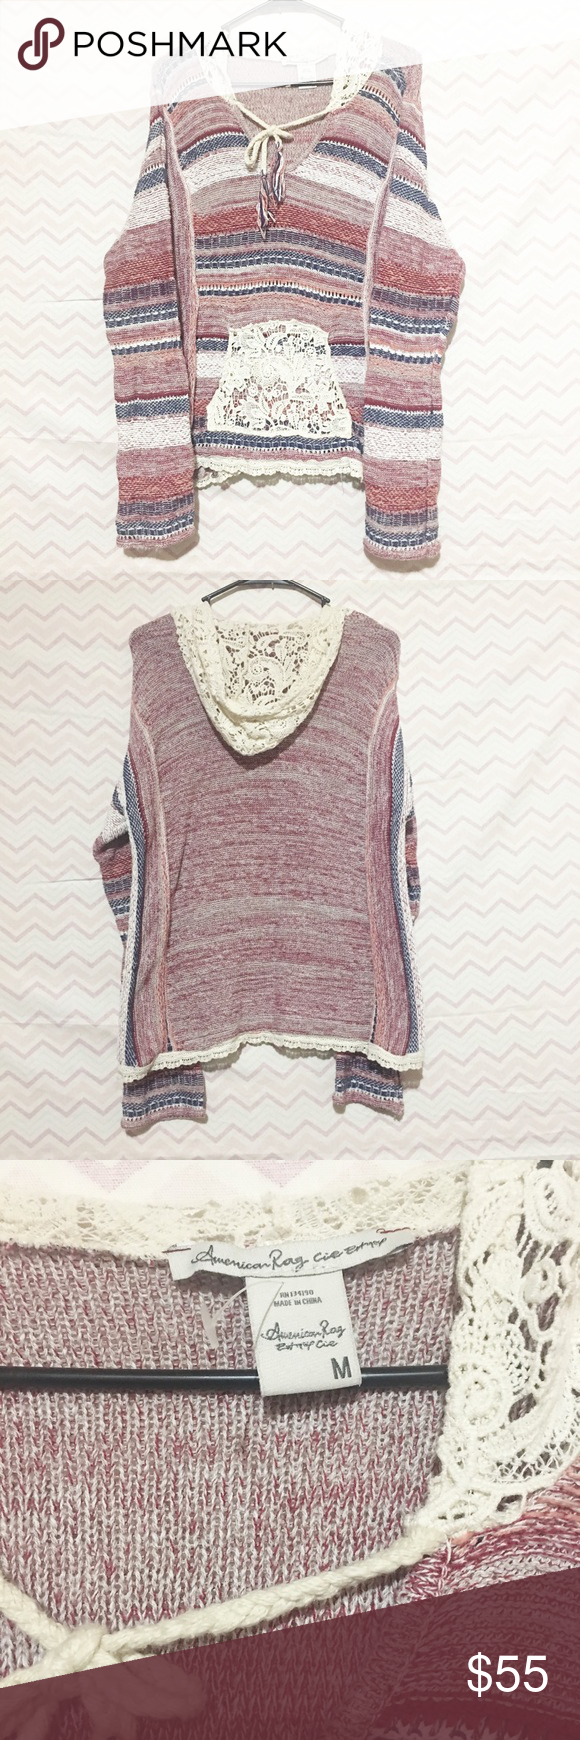 ✨American rag cie hooded sweater NWOT Brand new without tags! Never worn just tried on! Absolutely gorgeous! Beautiful lace detail on the front pocket and hood! Very light weight! Make an offer I always accept or counter! American Rag Sweaters Crew & Scoop Necks